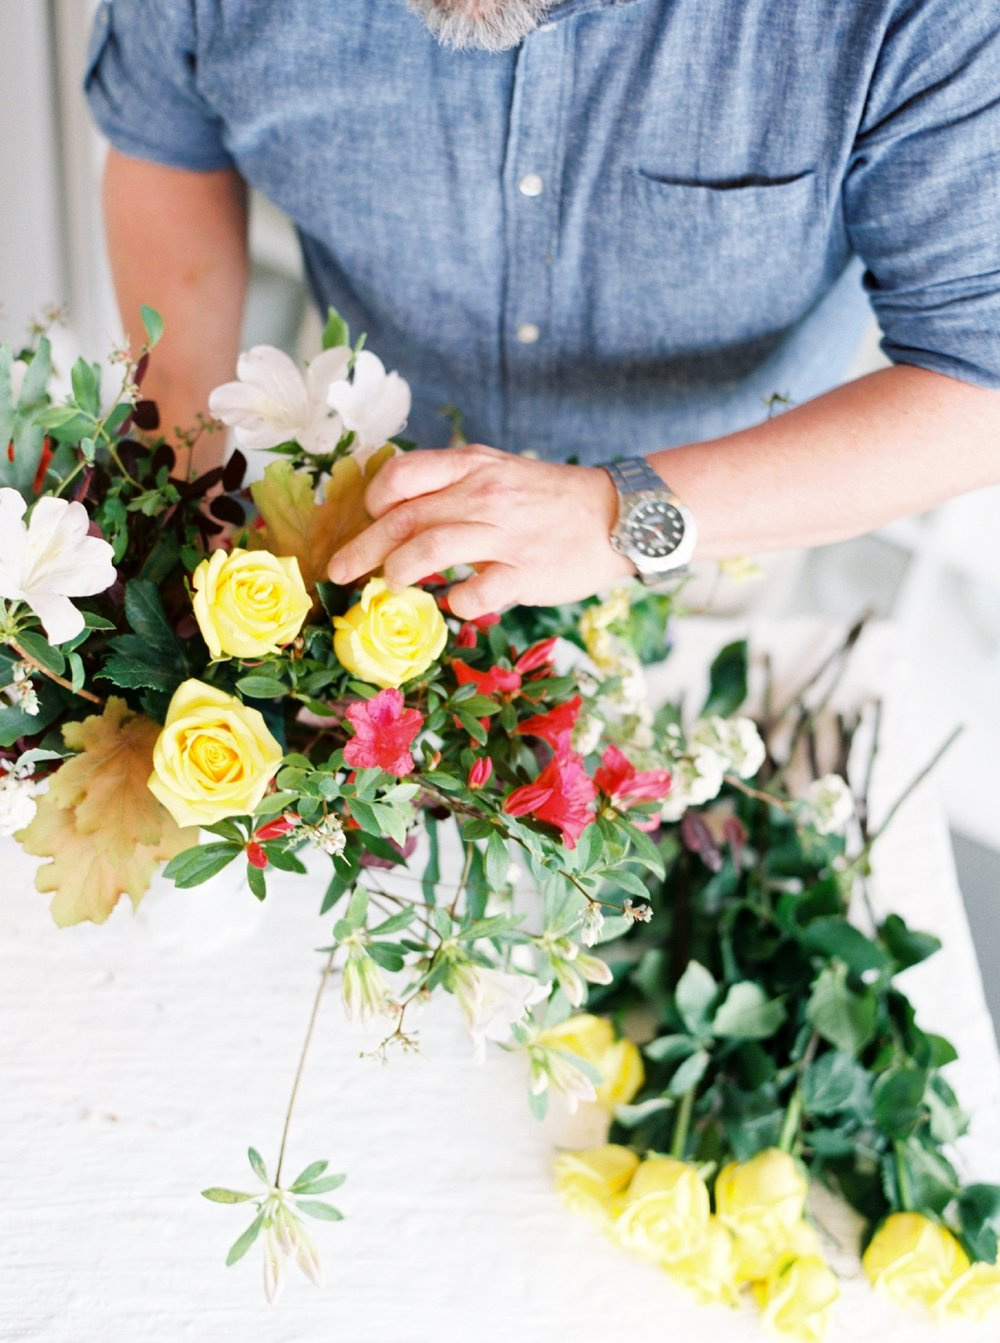 How To Make a Garden Fabulous Centerpiece Rosemary Beach Florist  Myrtie Blue  Shannon Griffin_0024.jpg